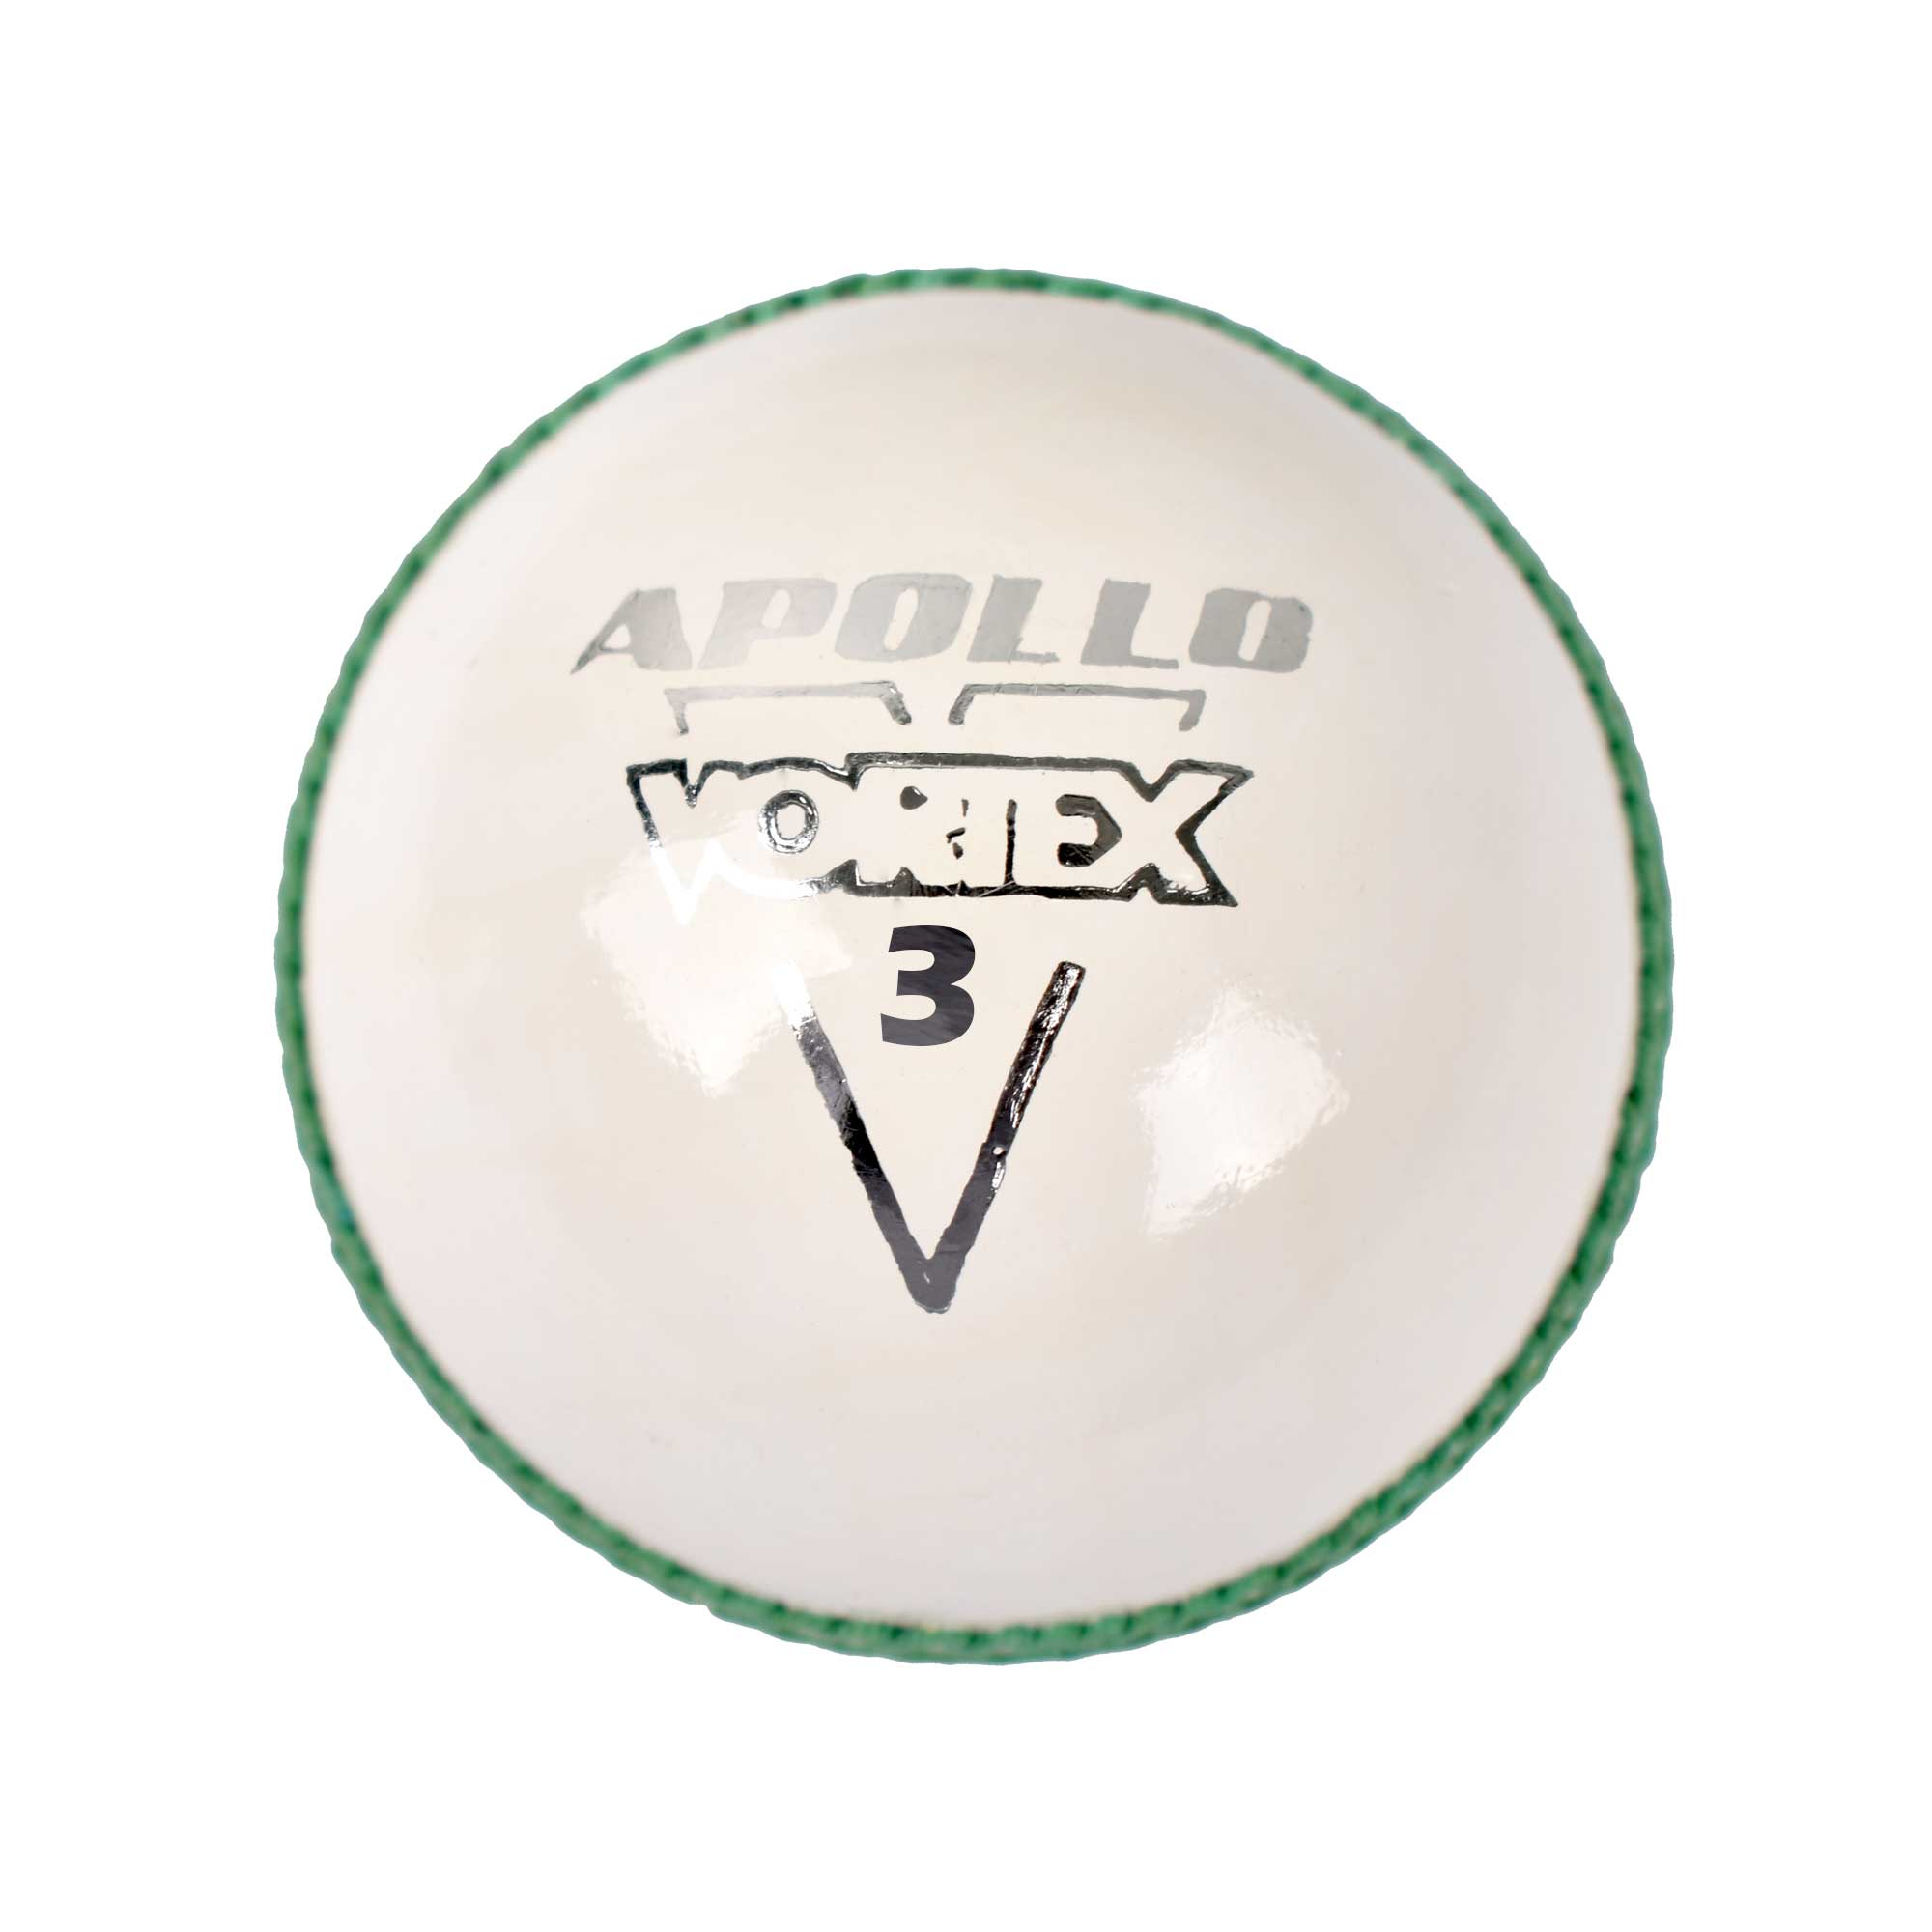 APOLLO VORTEX CRICKET BALL - WHITE